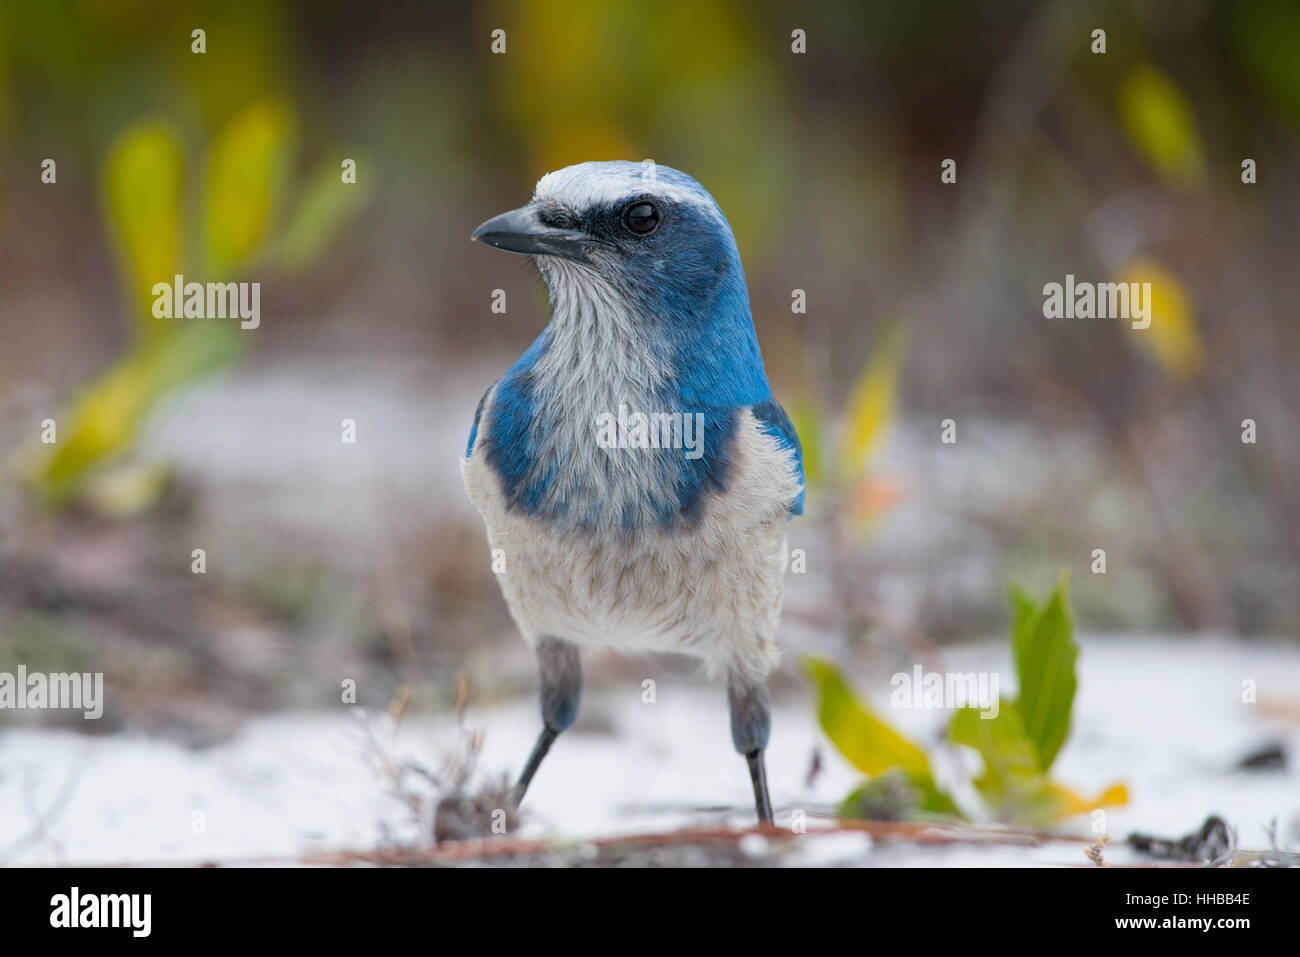 A curious Florida Scrub Jay stands on the ground for a close up portrait. Stock Photo